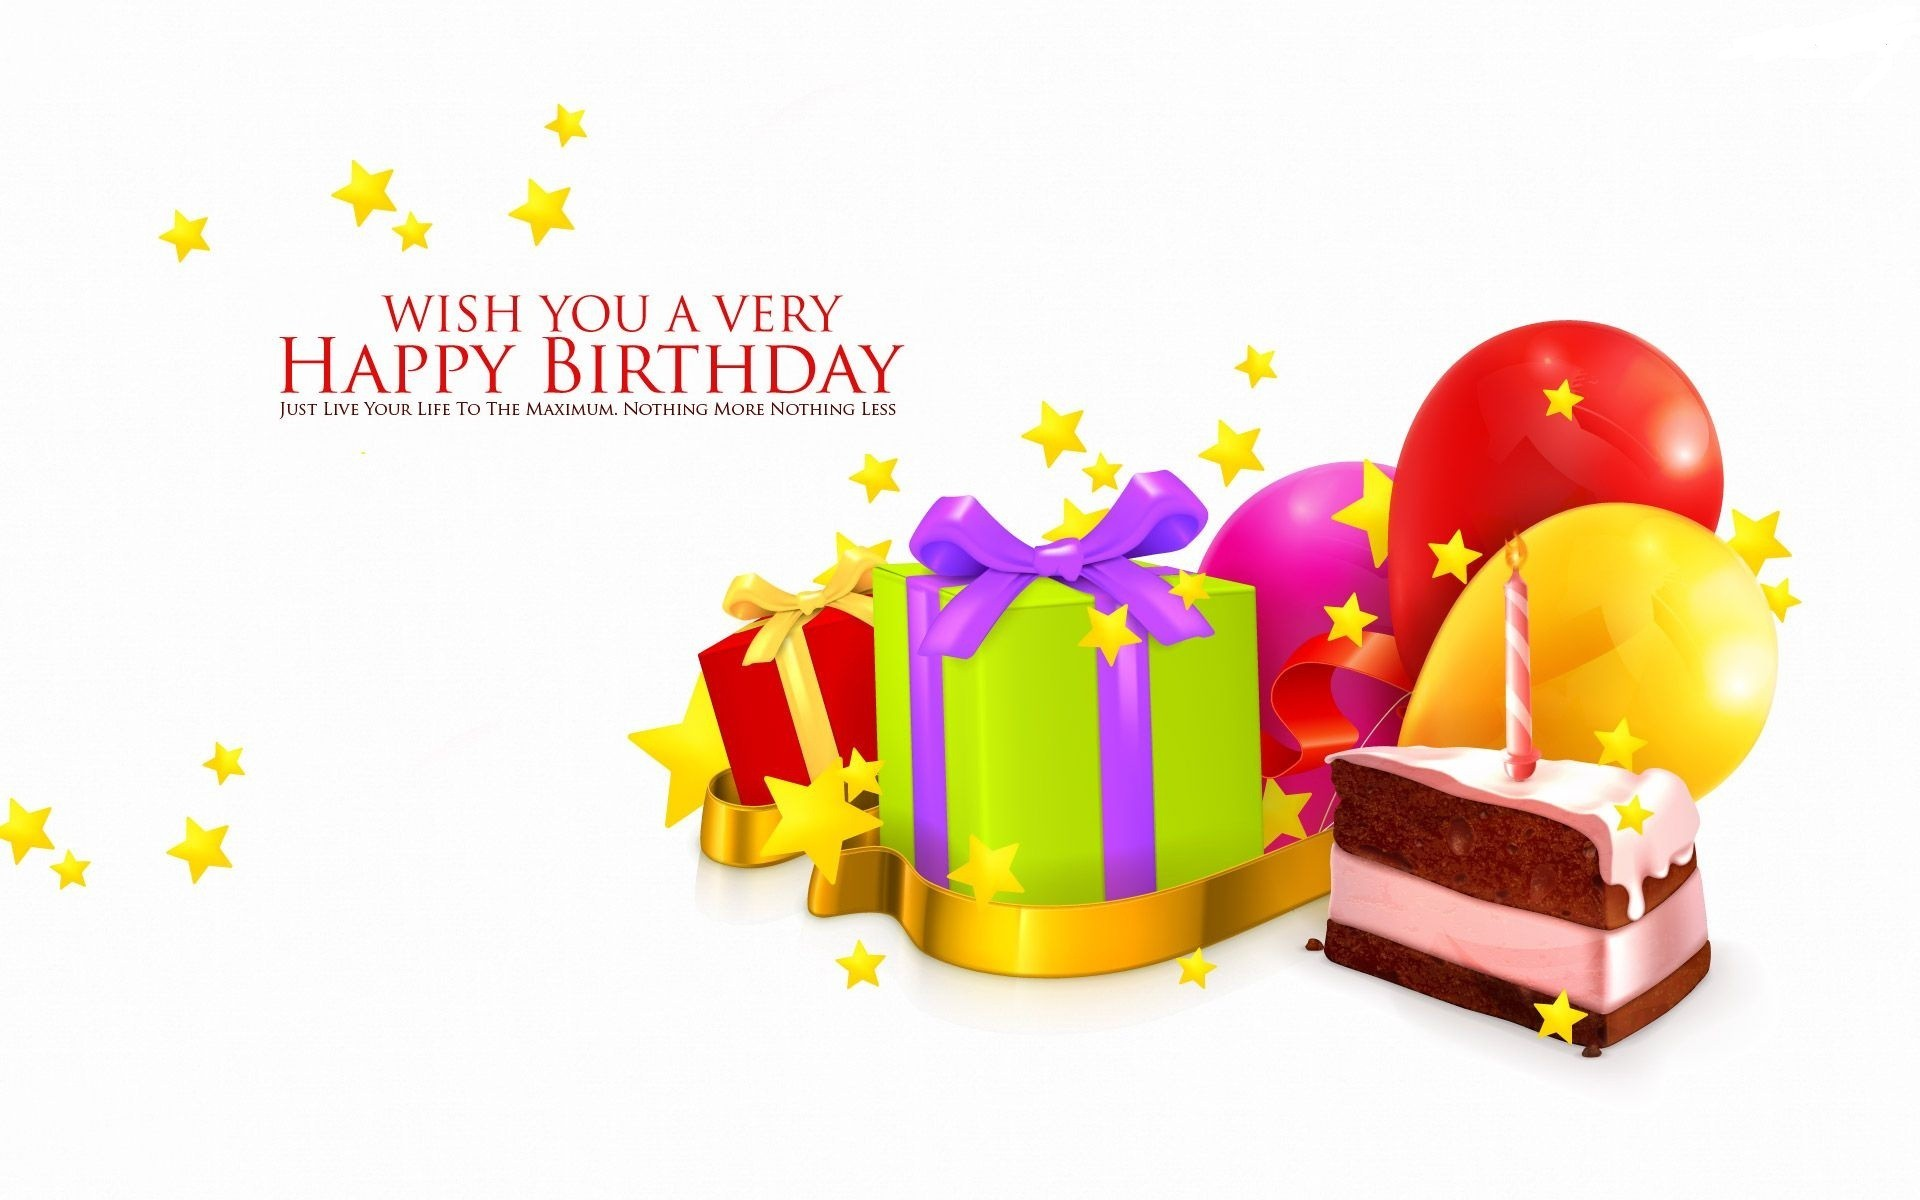 happy birthday wallpaper hd Google Search ✿ Happy Birthday   HD Wallpapers    Pinterest   Happy birthday and Wallpaper